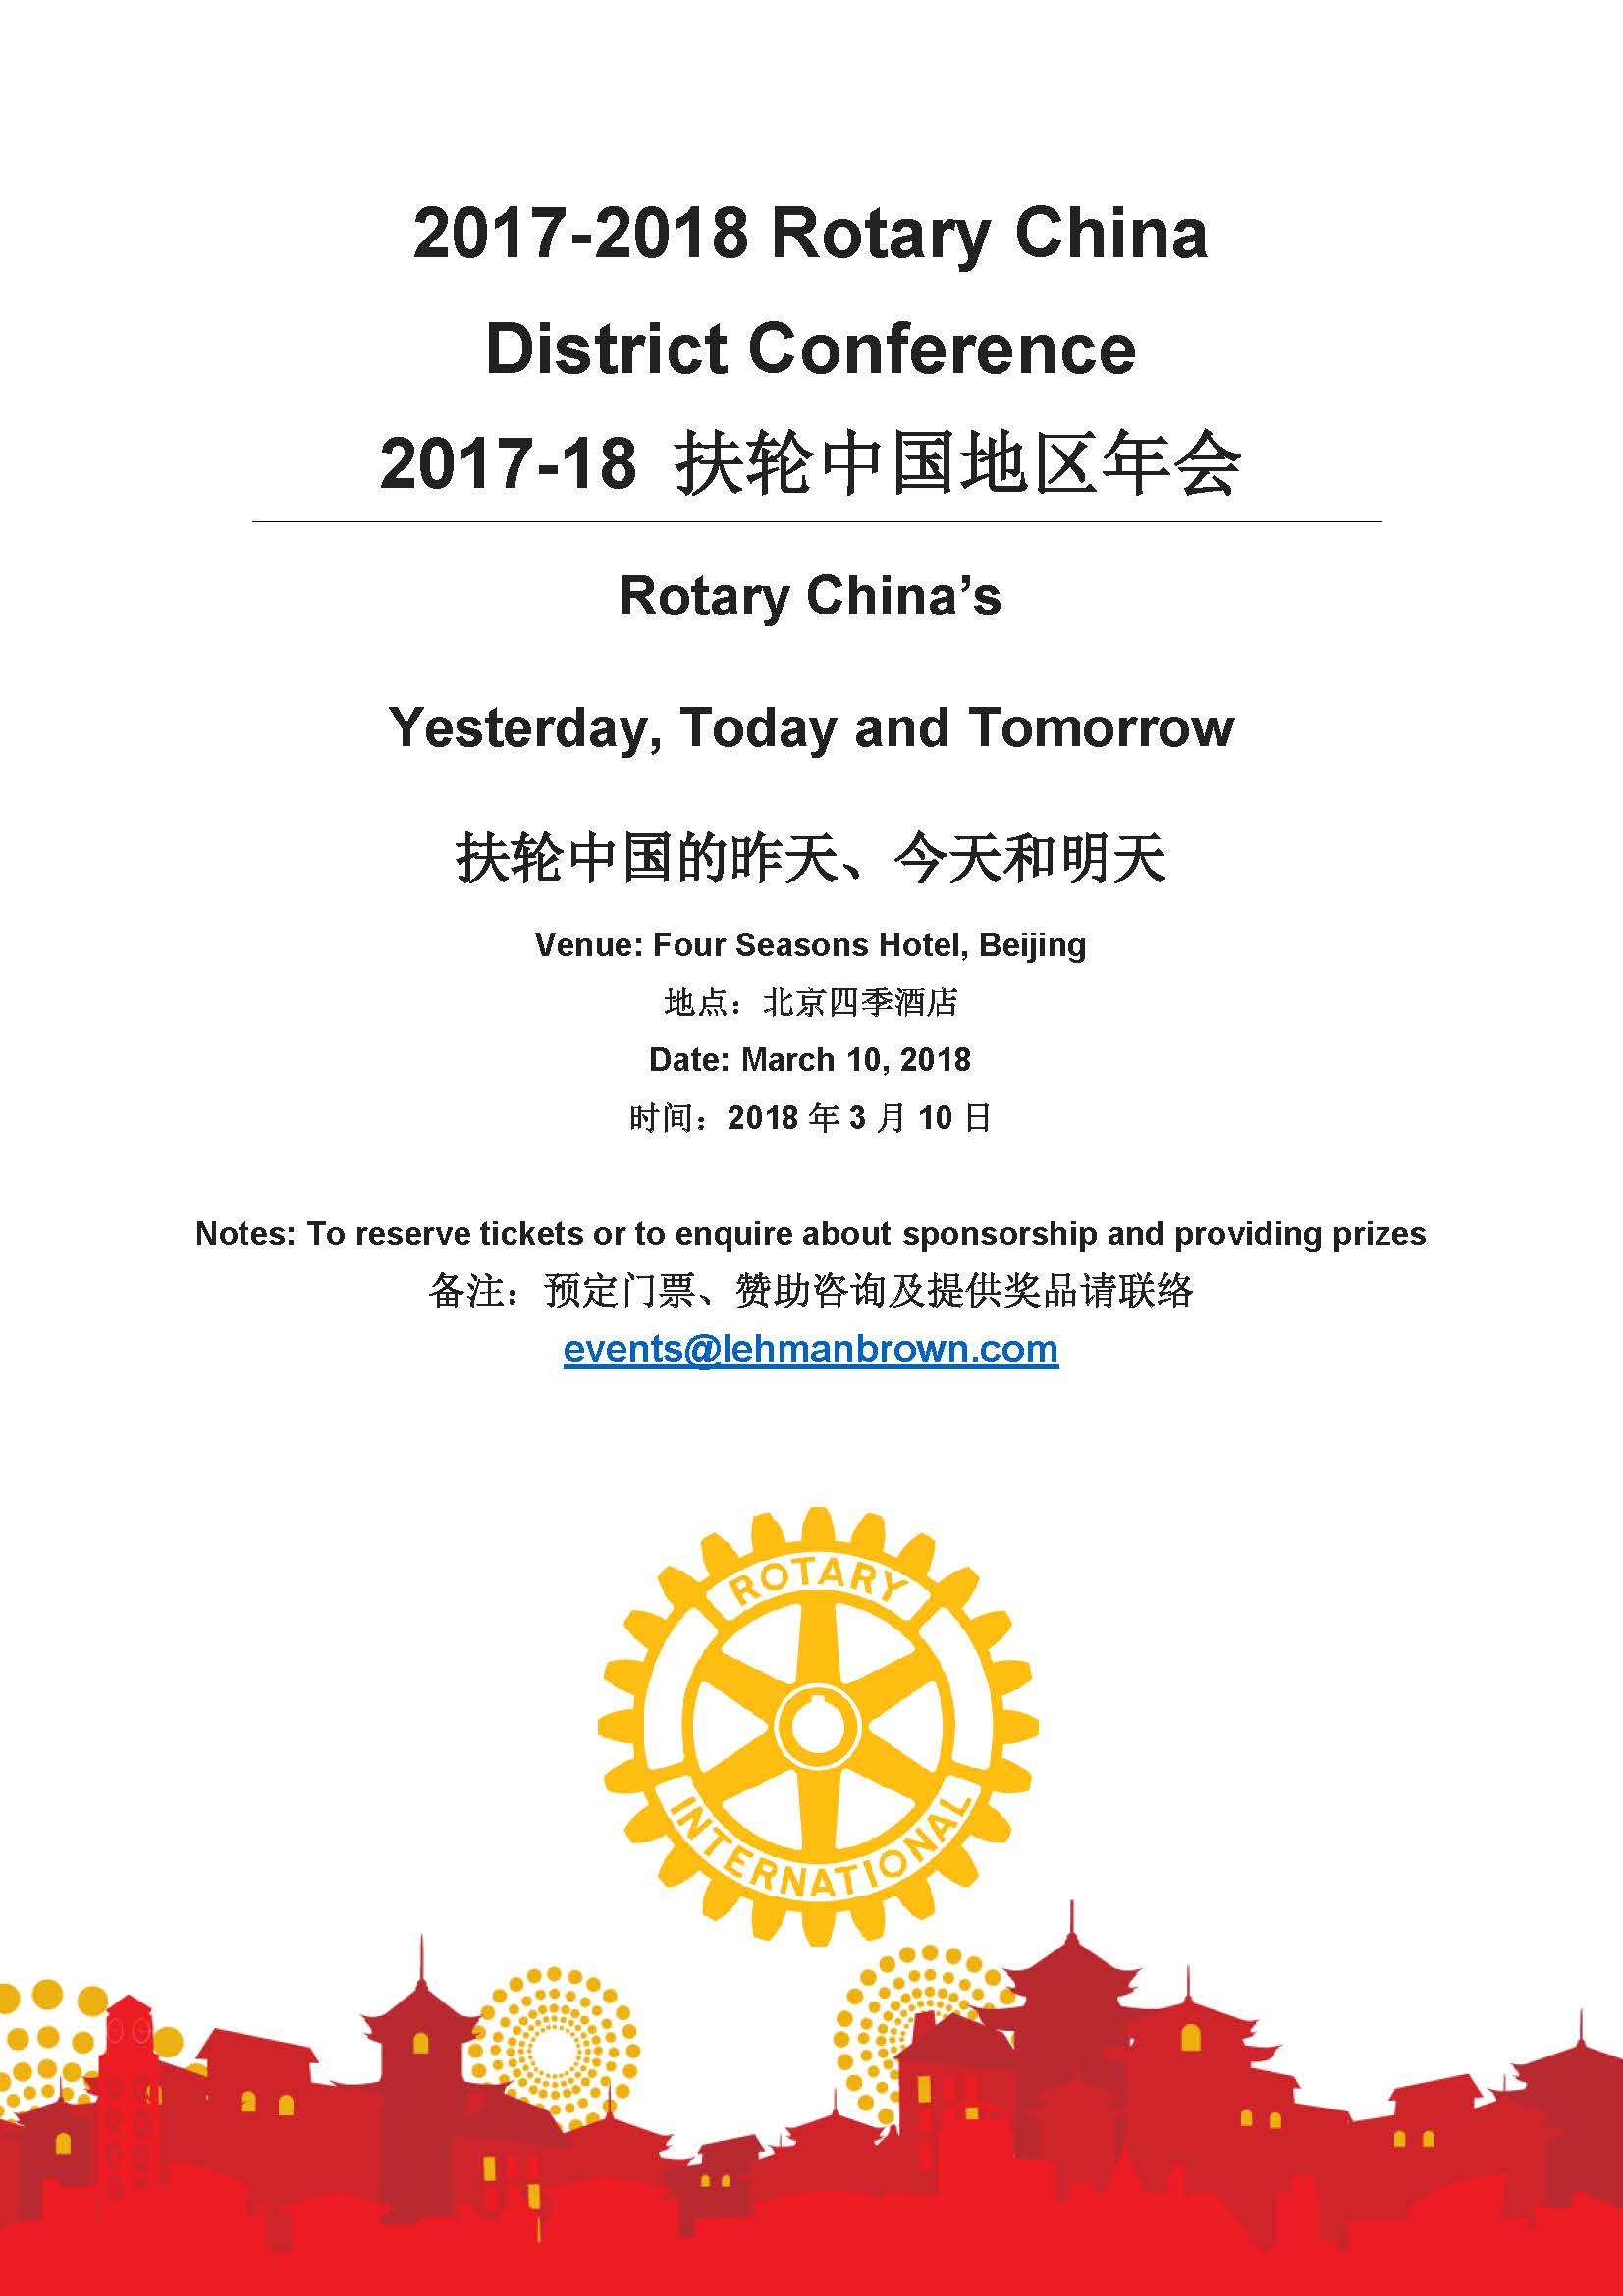 2017-18+Rotary+China+Conference-Final+English+and+Chinese+version+3_Page_1.jpg